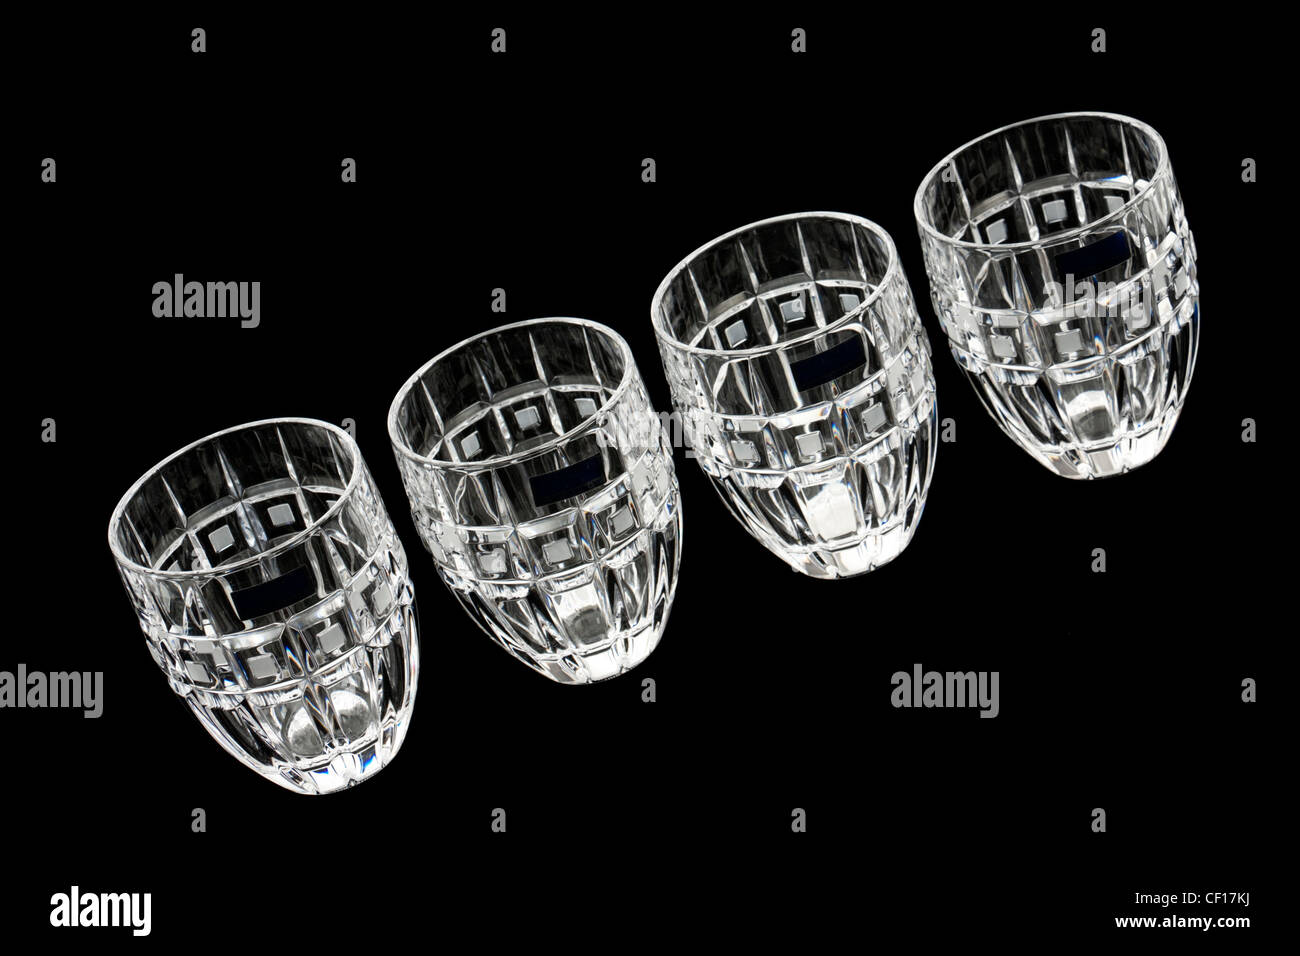 Set of Waterford Lead Crystal 'Marquis' Quadrata whisky glasses (2007) - Stock Image